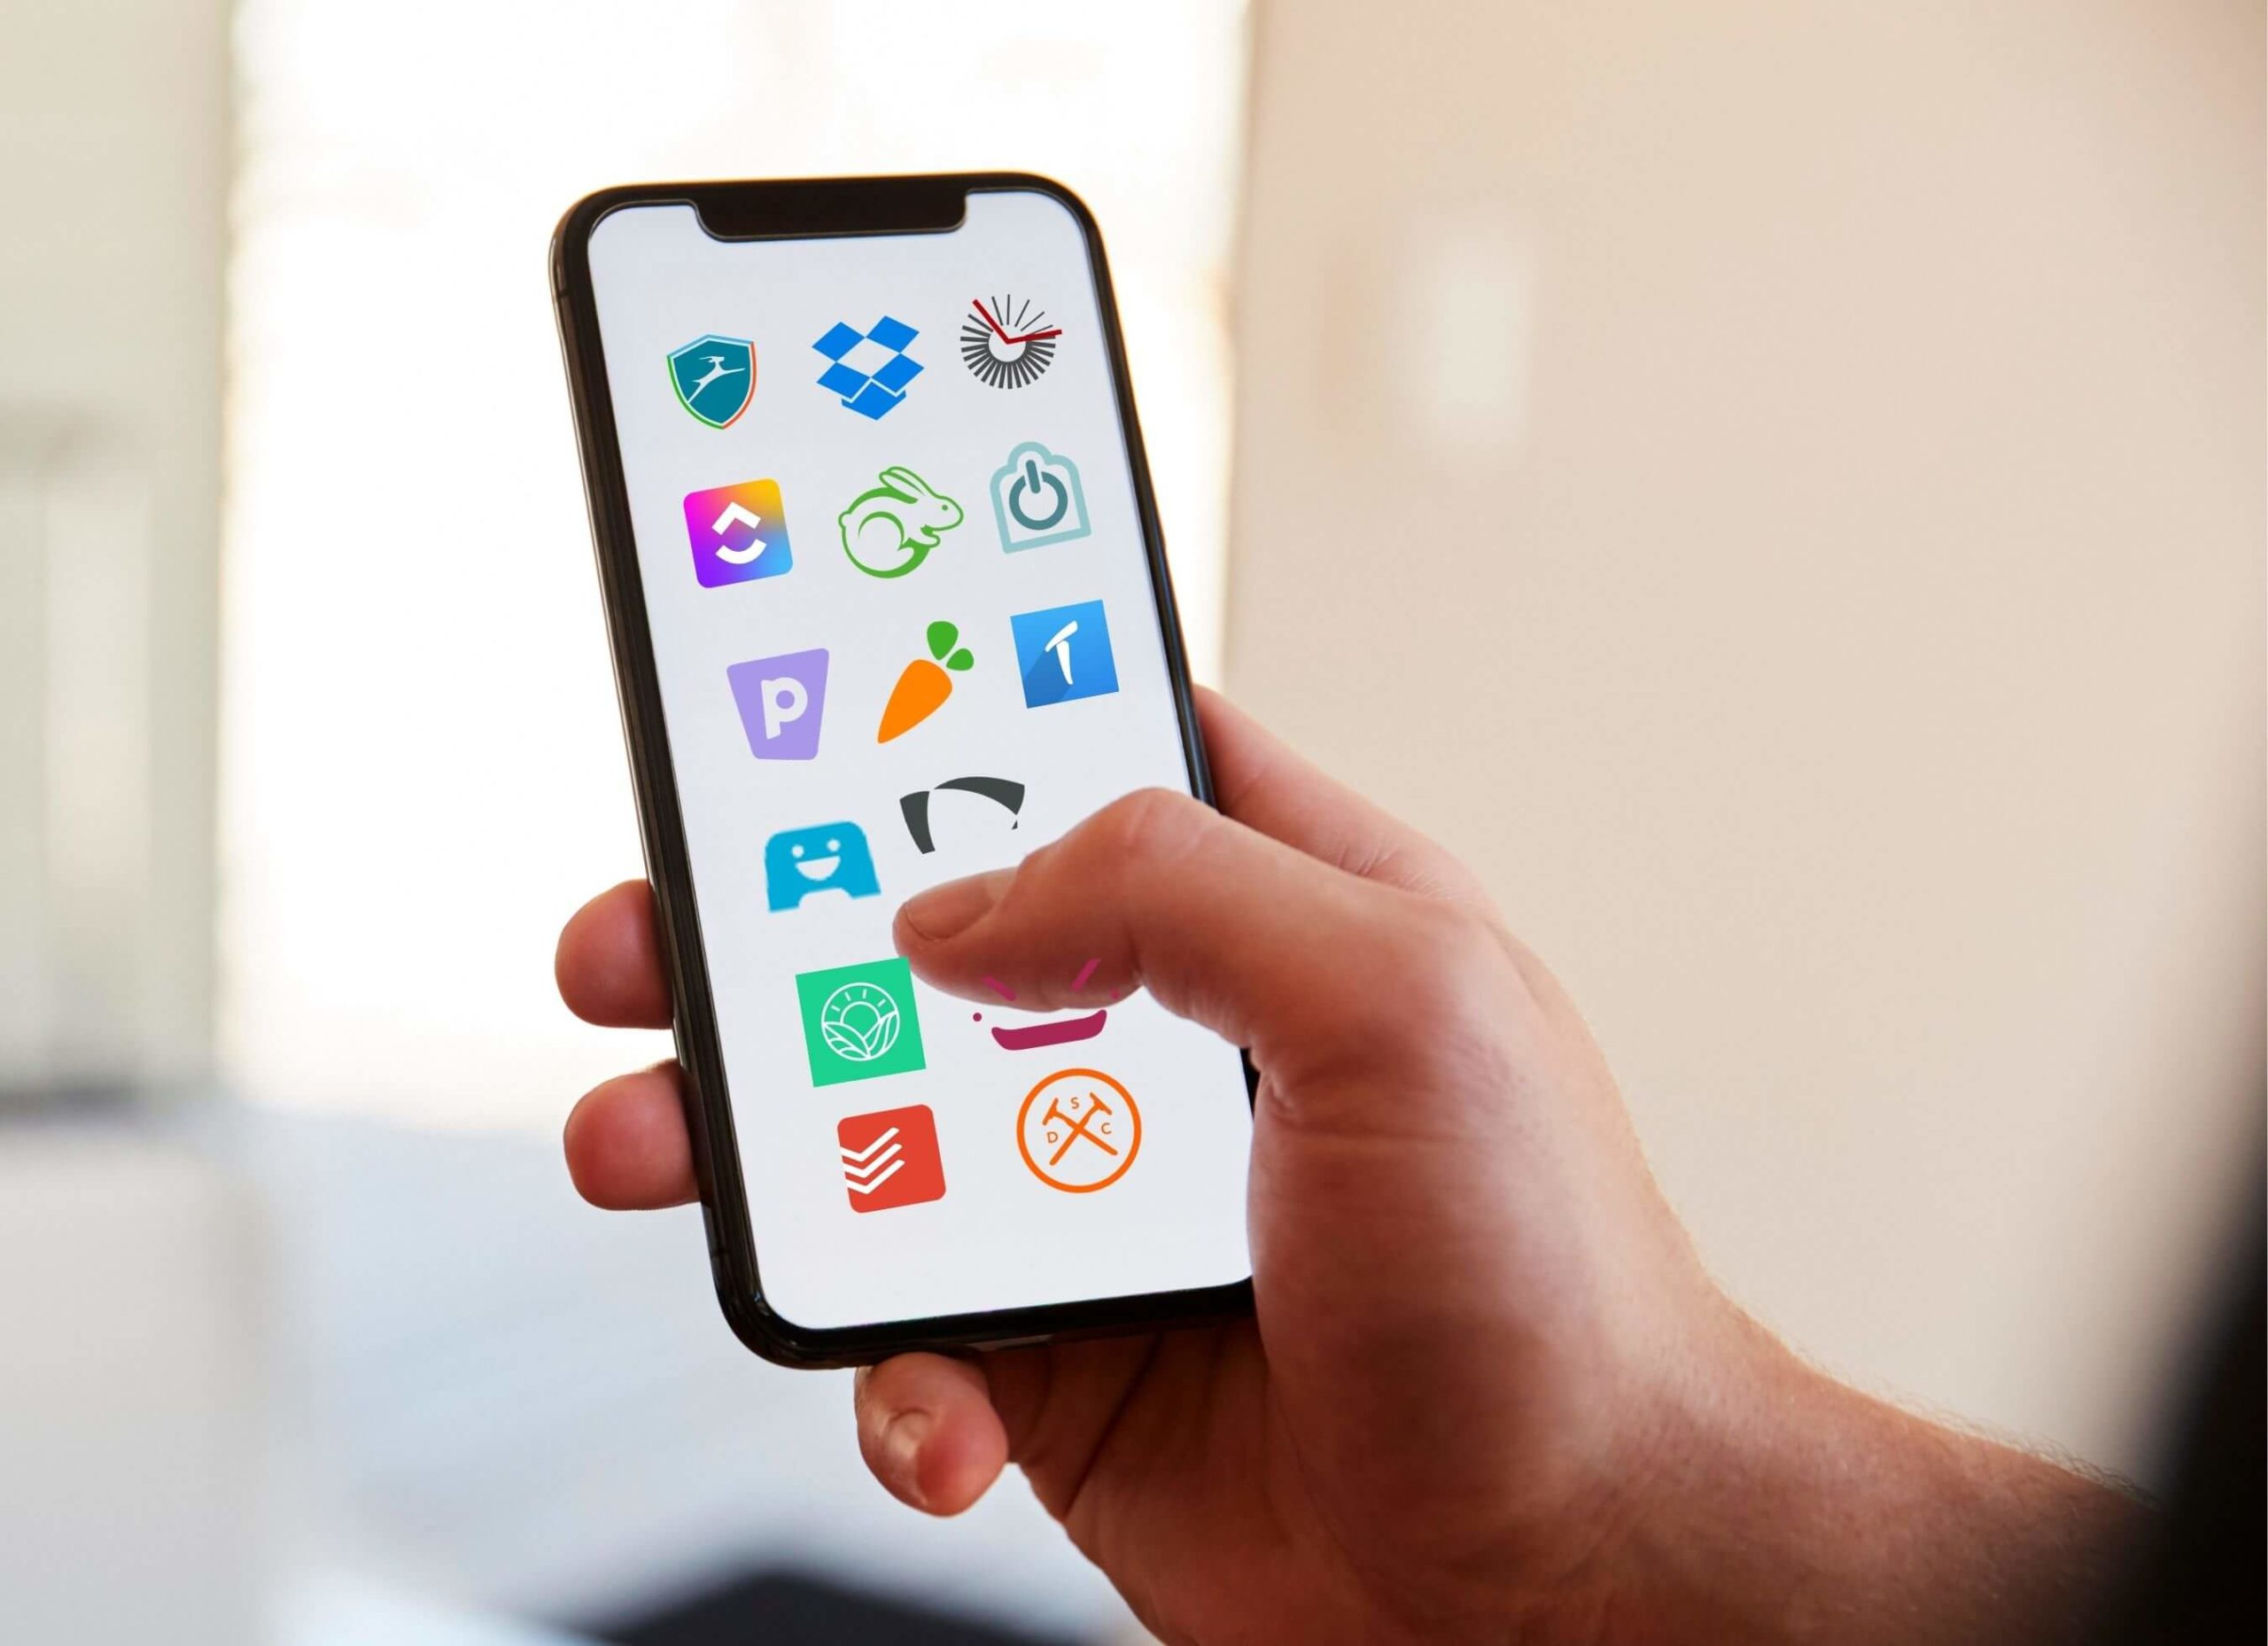 Being app-crazy isn't productive